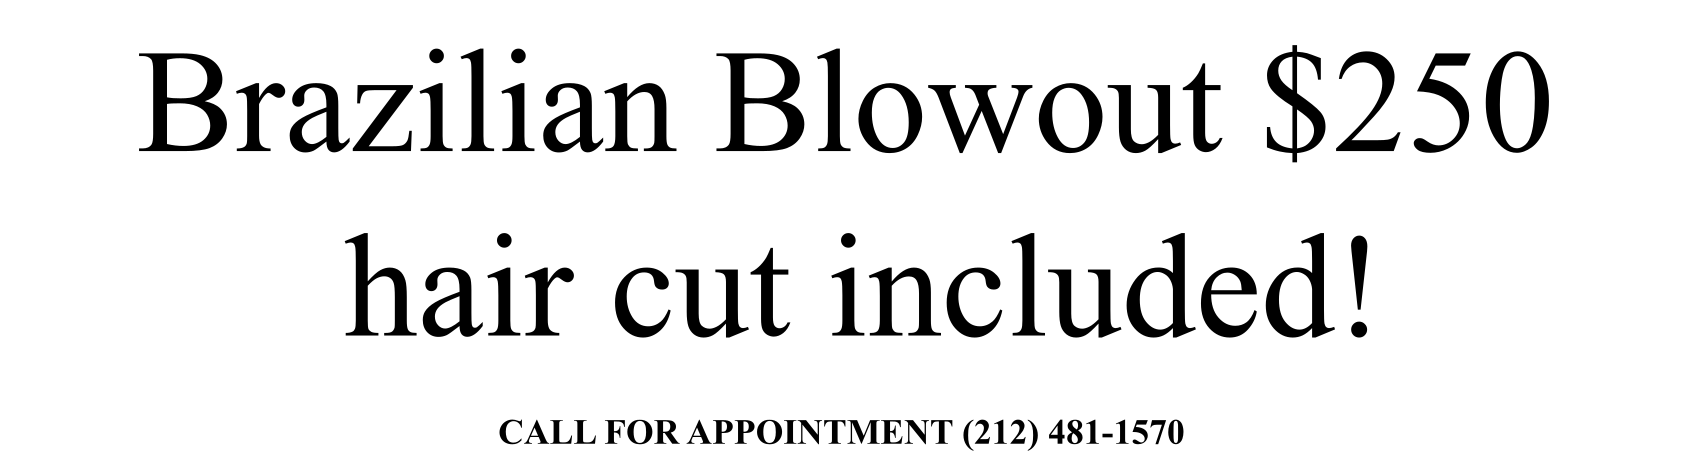 Brazilian blowout text only 2019 White